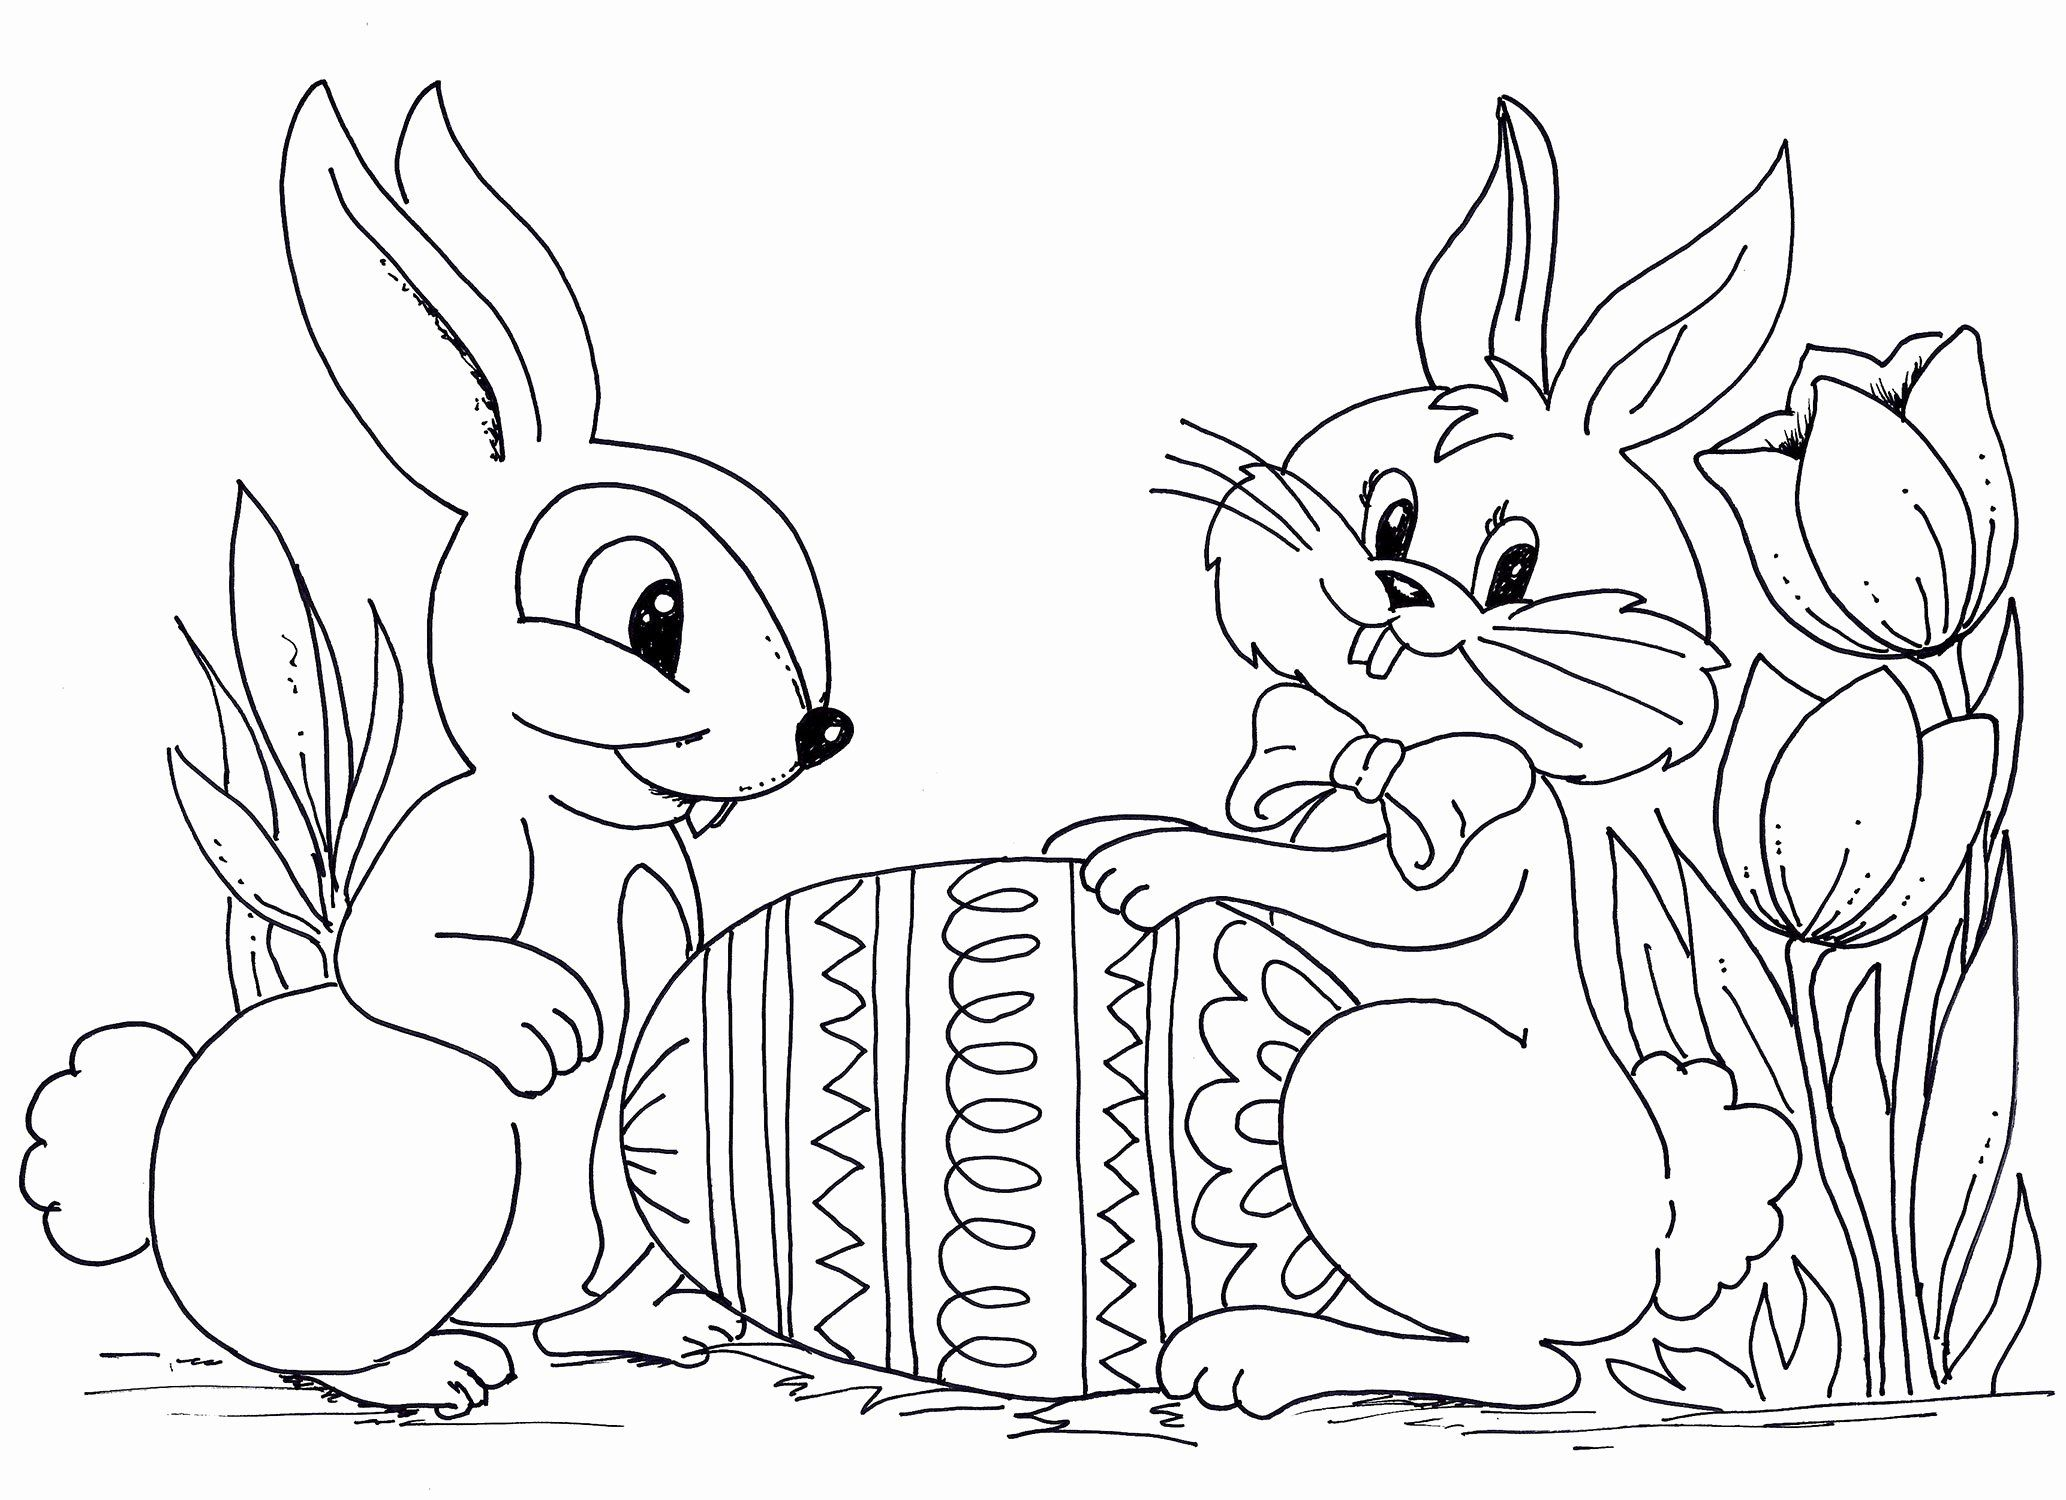 Easter Coloring Sheets for Kids in 2020 | Easter bunny ...